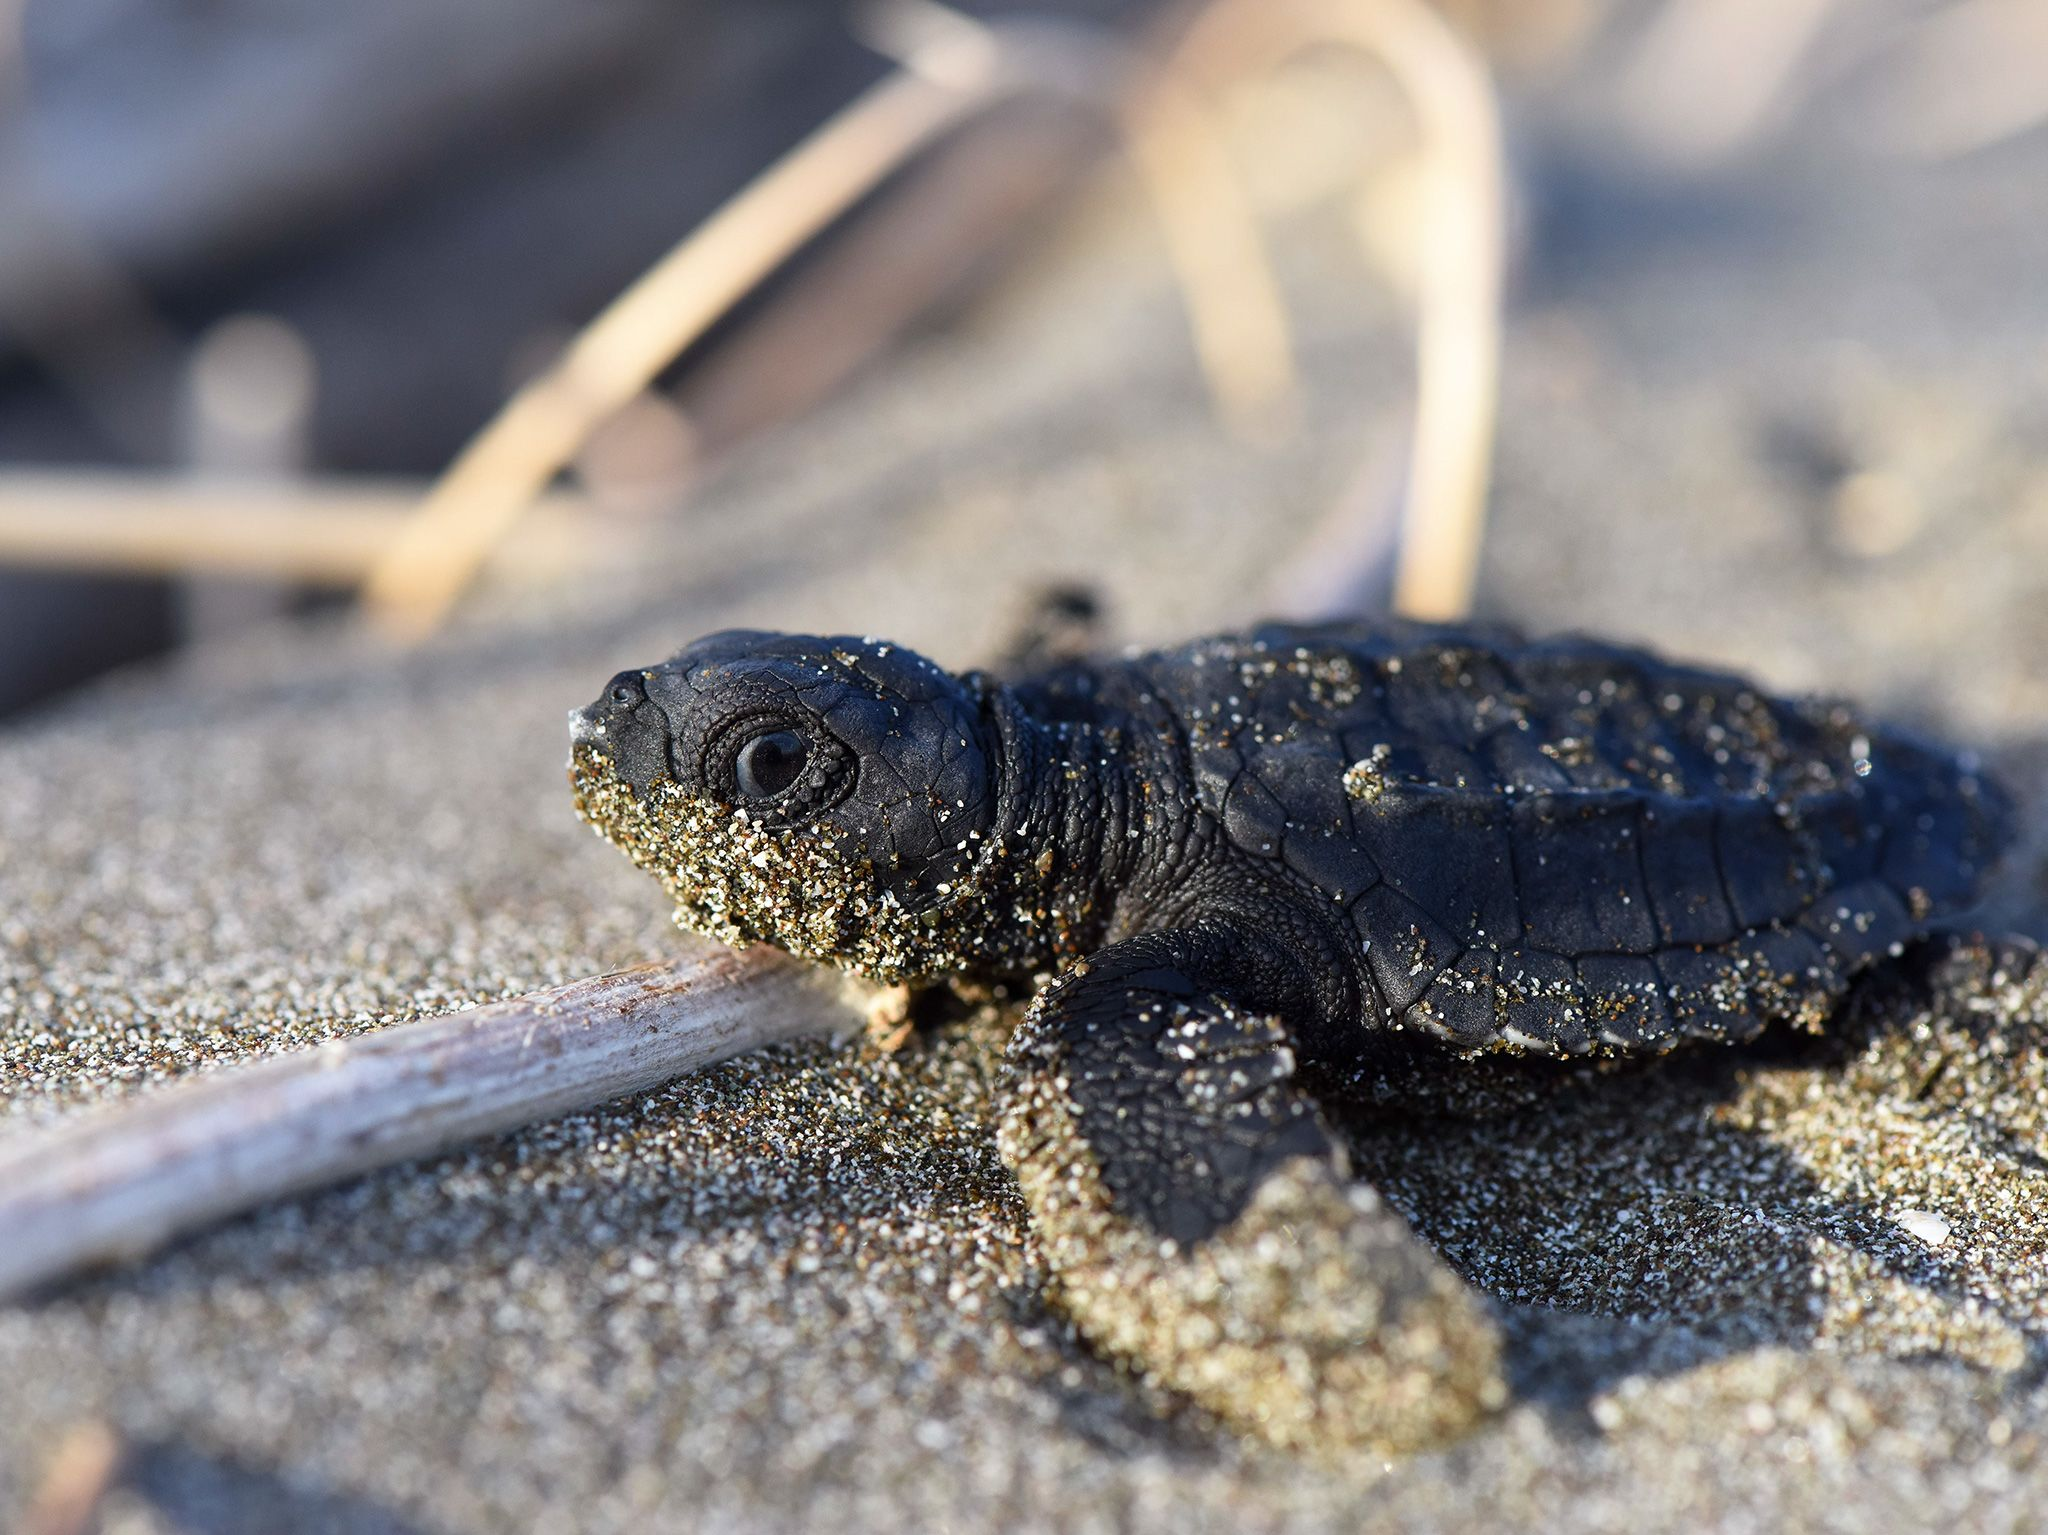 Nancite, Costa Rica: After digging its way to this surface, this turtle hatchling must now run a... [Foto del giorno - aprile 2019]